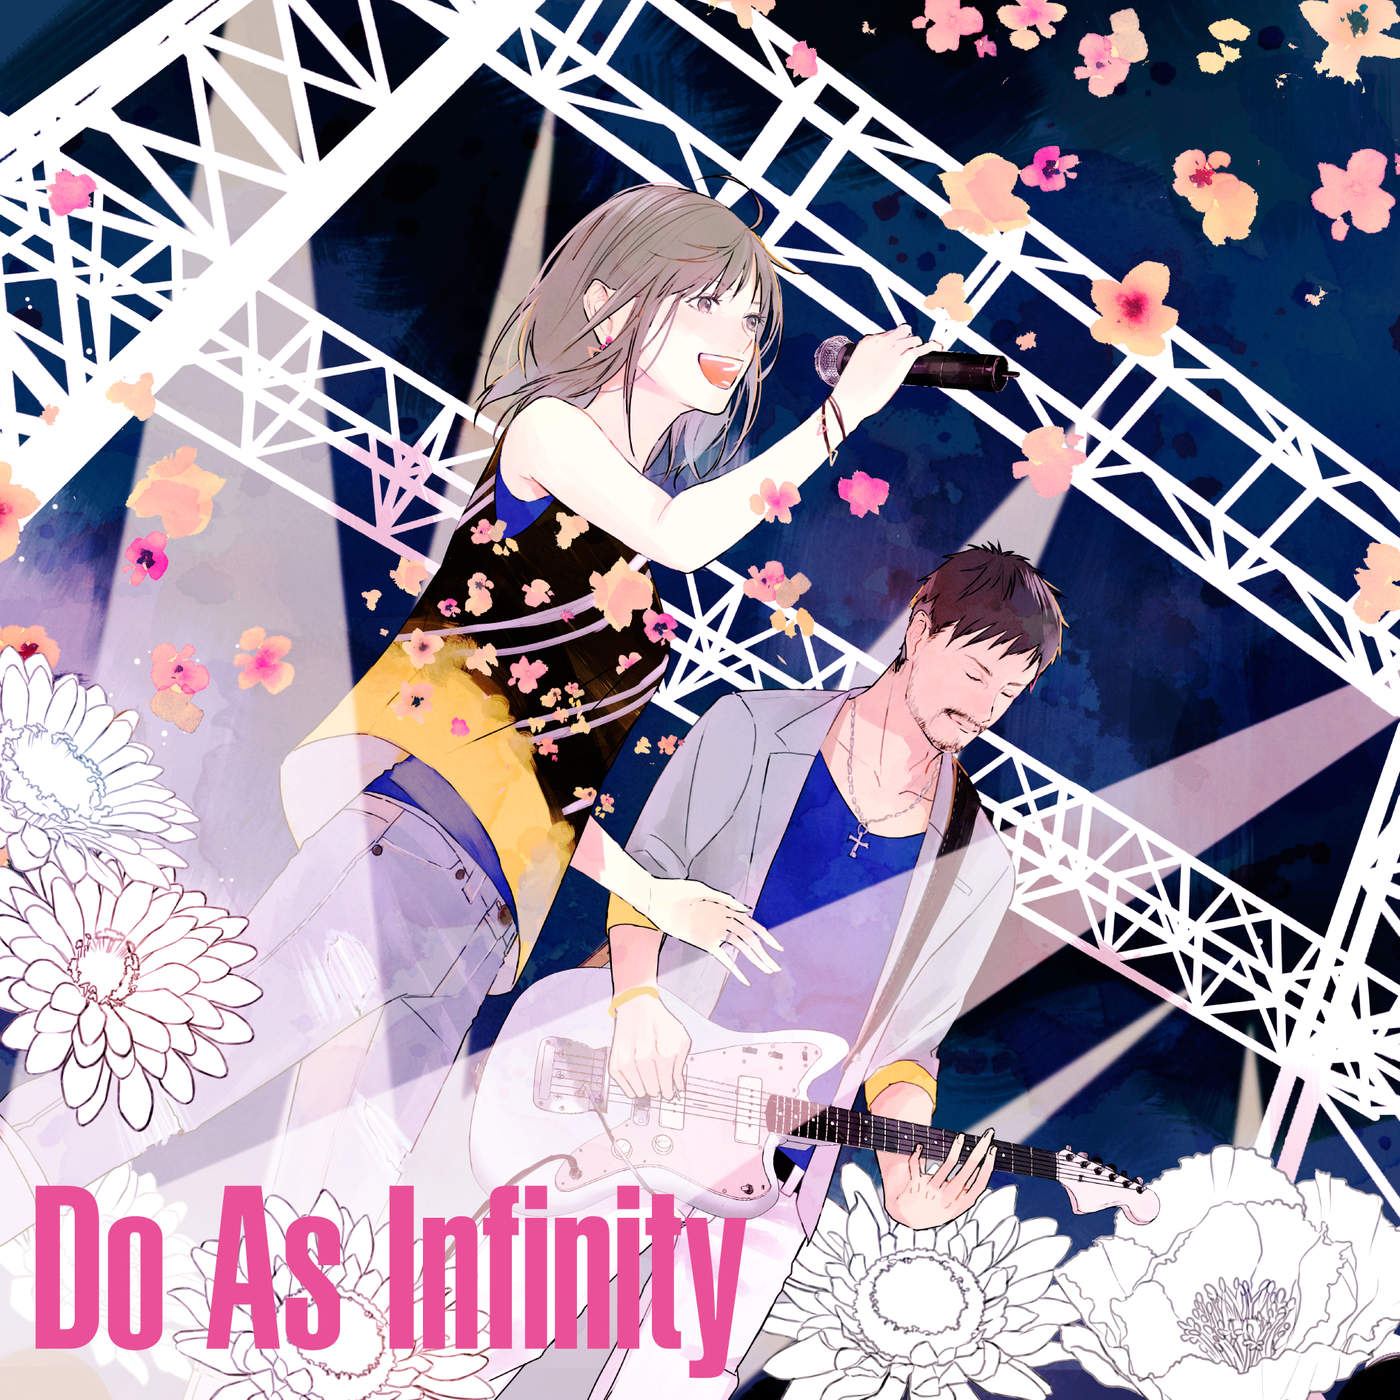 20160203.04.1 Do As Infinity - Anime and Game COLLECTION cover.jpg